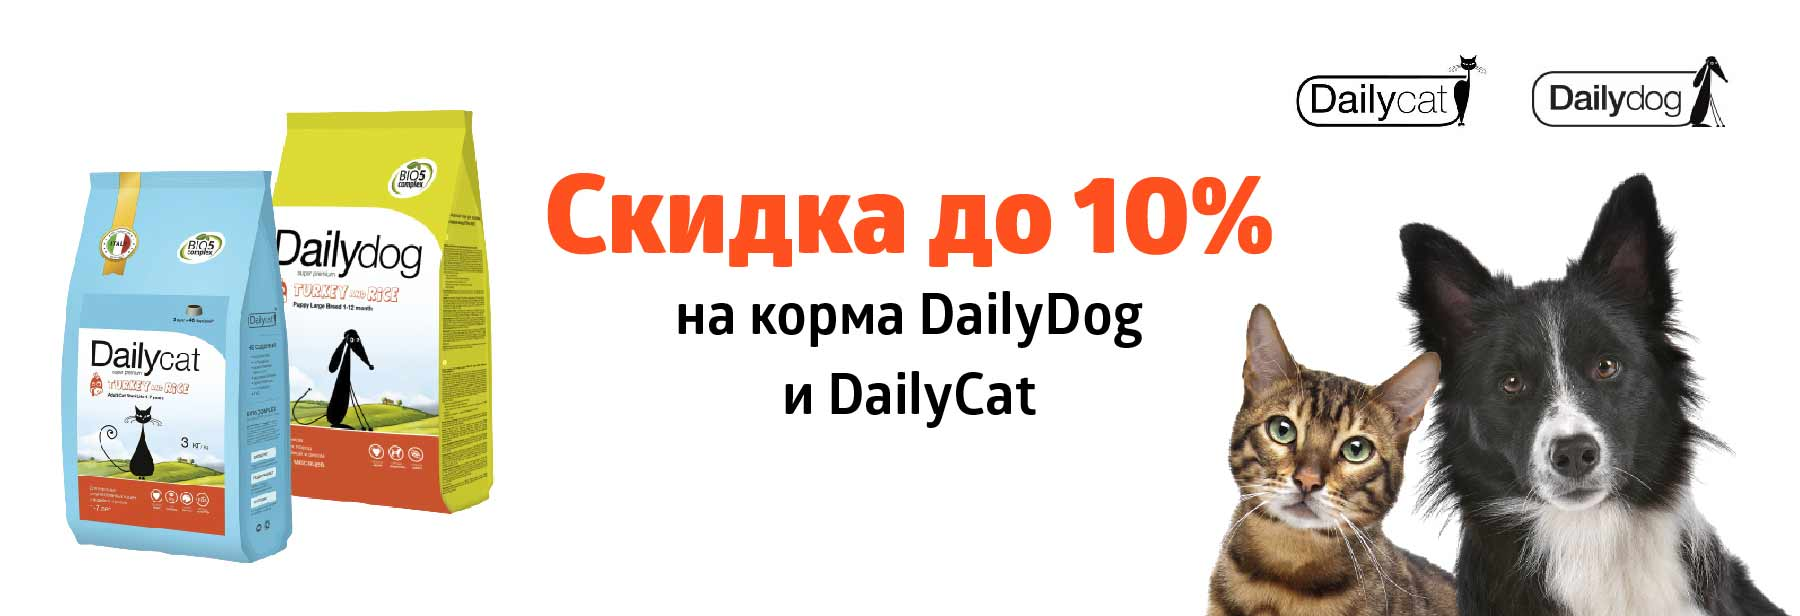 Dailypet